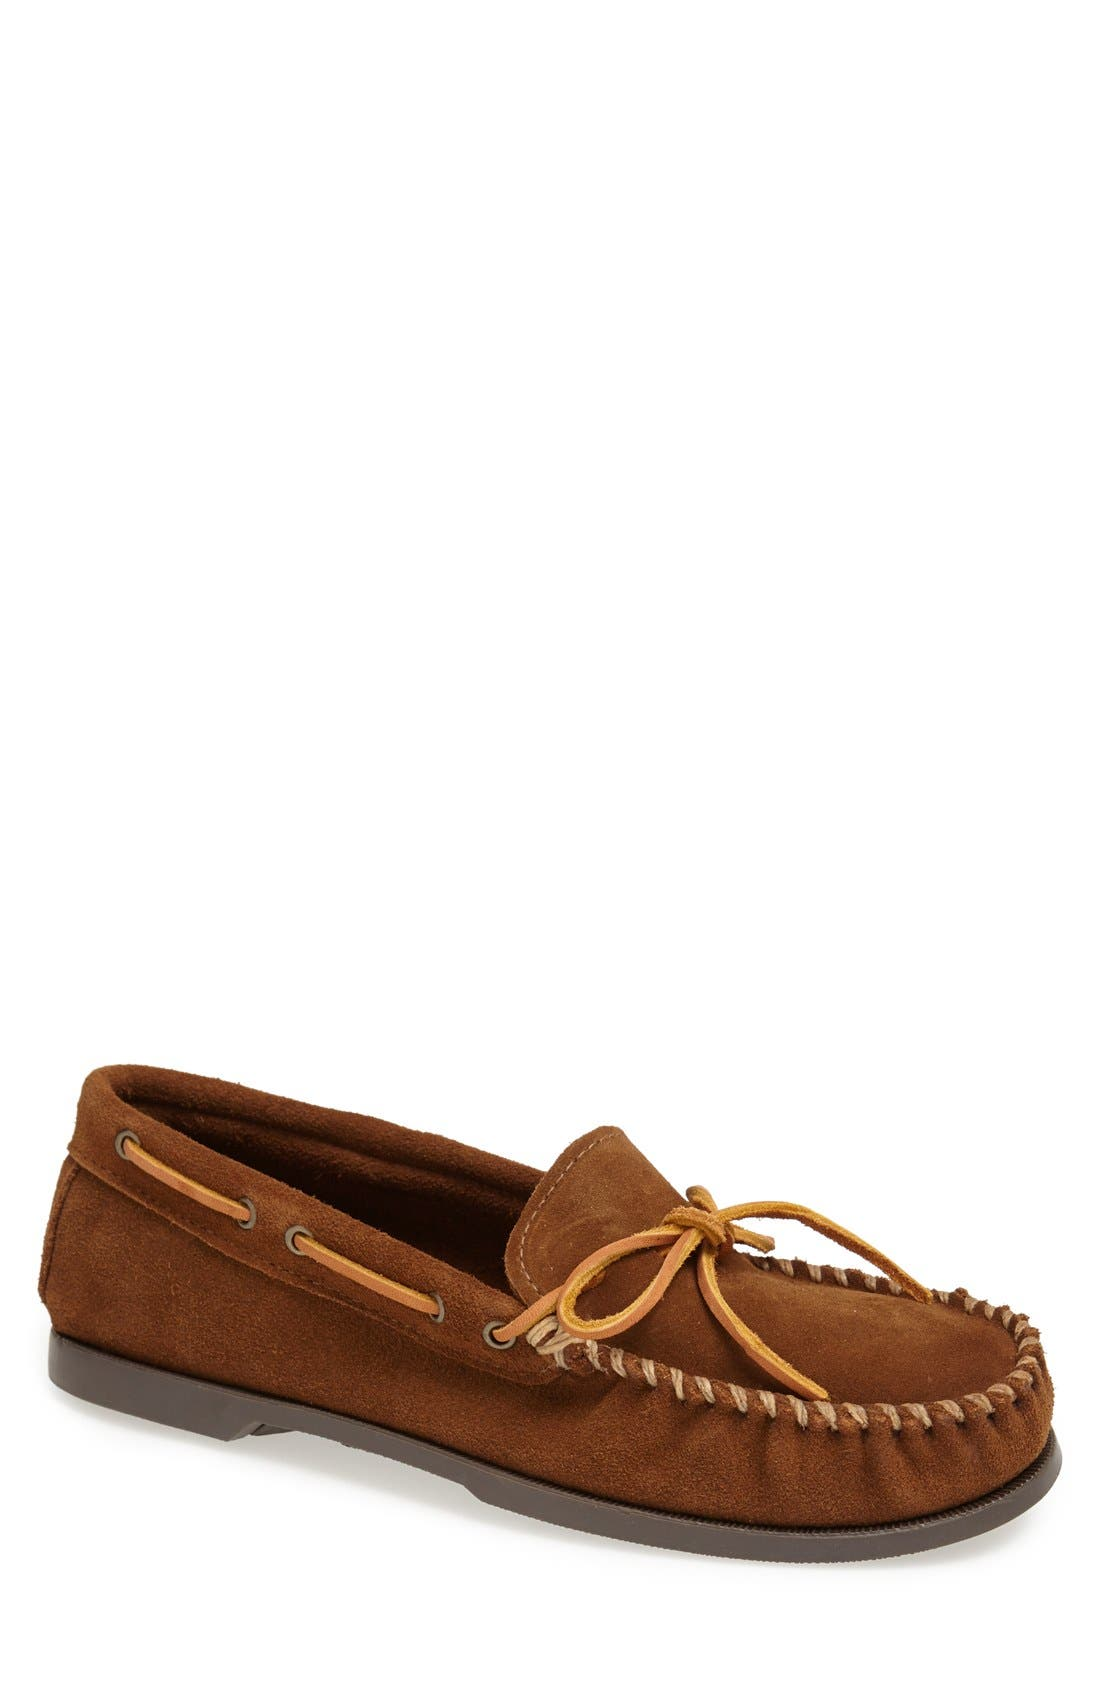 Alternate Image 1 Selected - Minnetonka Suede Camp Moccasin